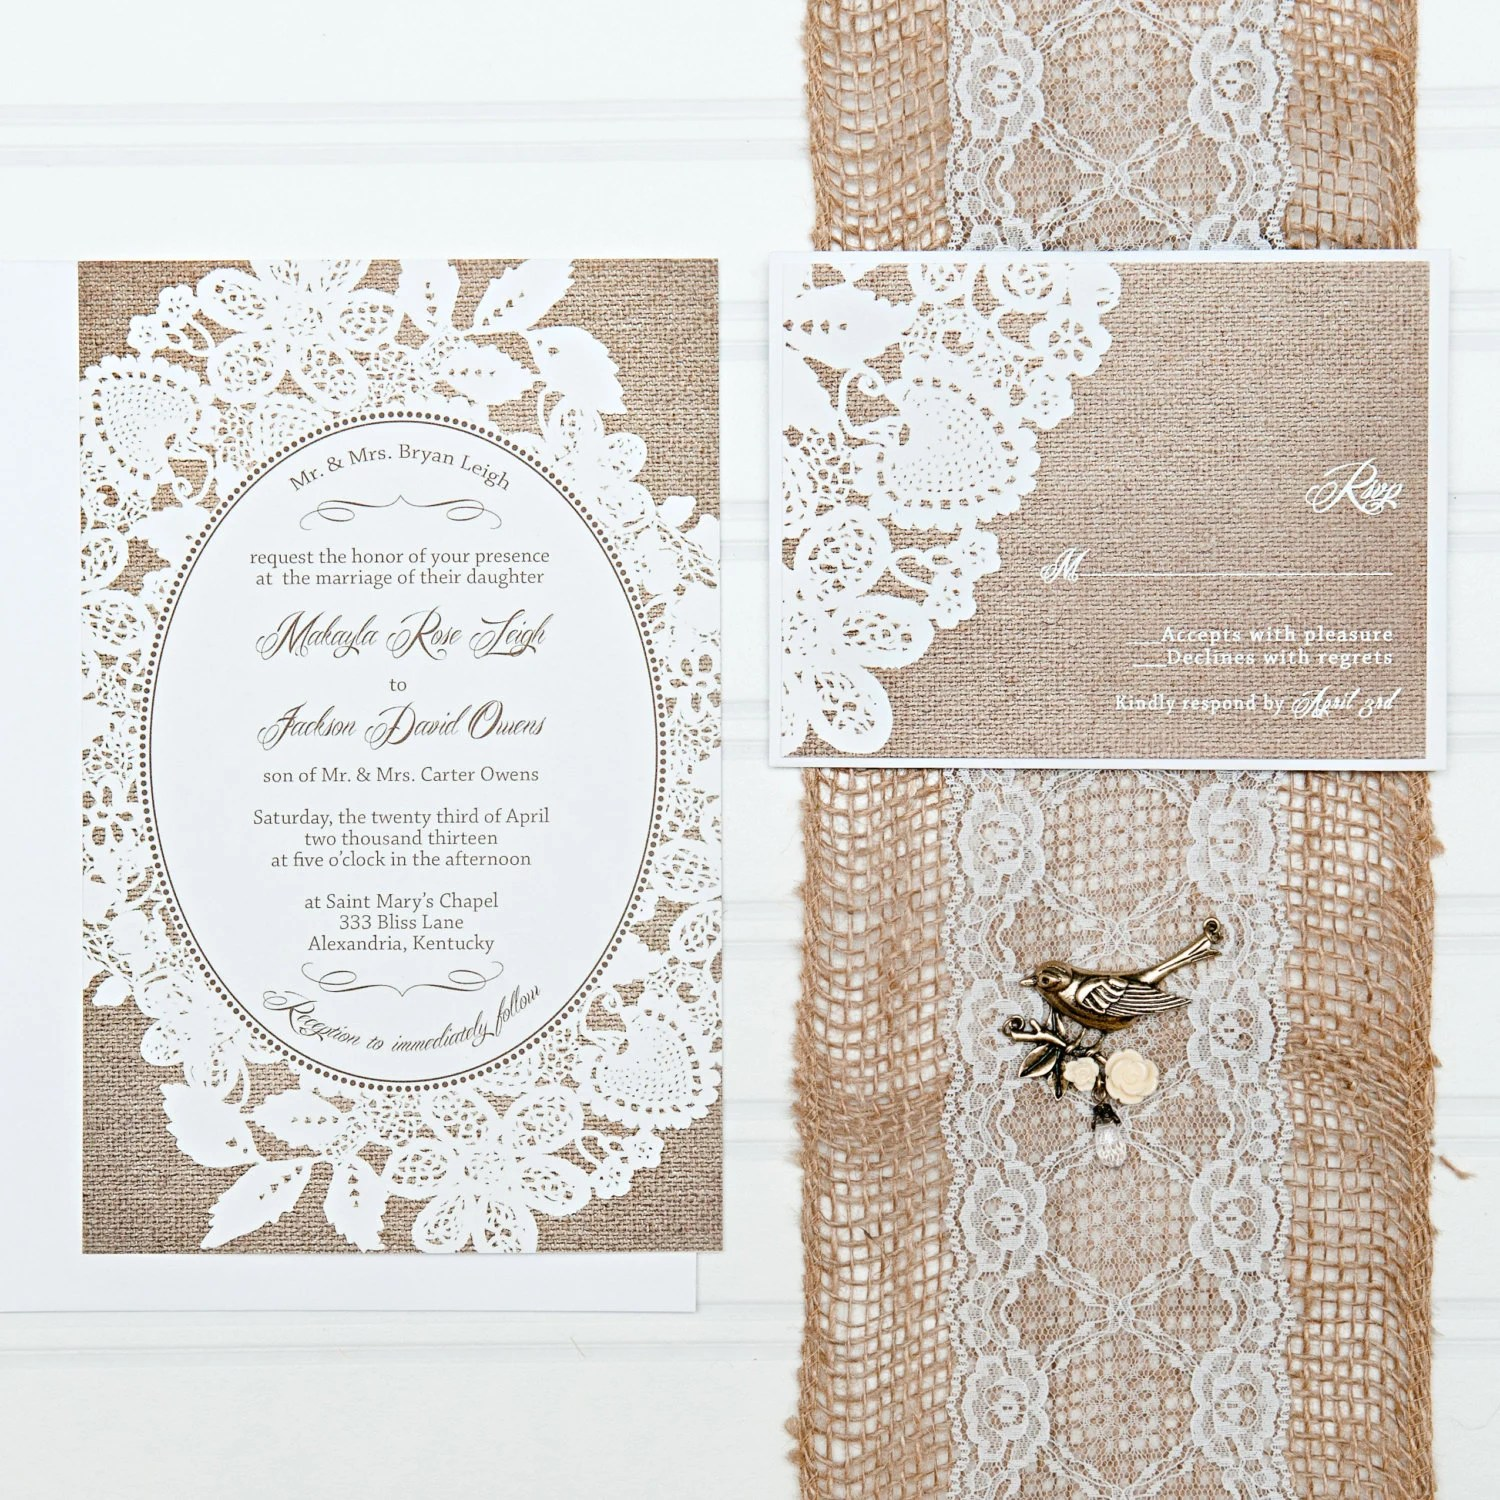 Burlap and Lace Wedding Invitation Set with RSVP cards and